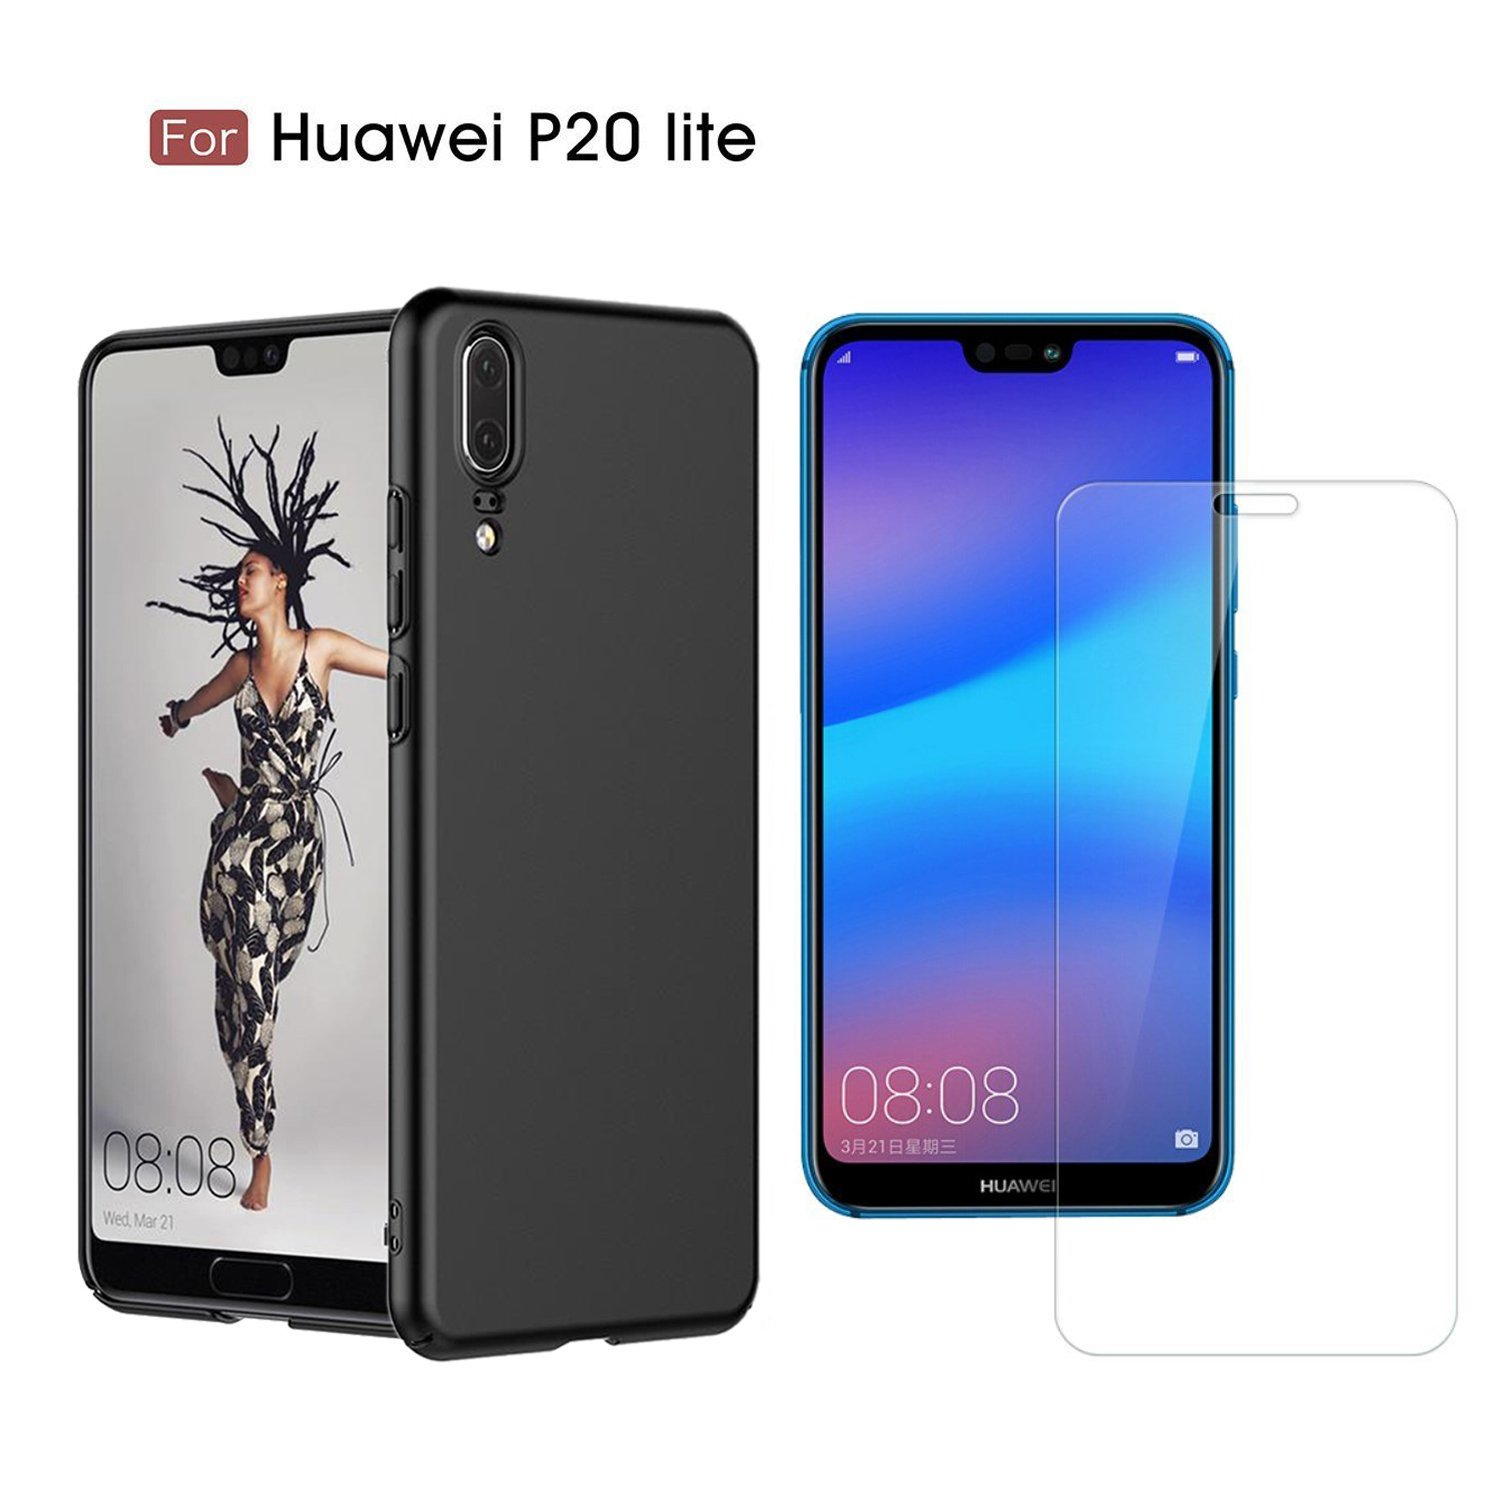 Huawei P20 Lite Case, with Huawei P20 Lite Screen Protector Tempered Glass Screen Film, Back Cover Case Ultra Slim PC Protective Shell Hard Shield Back Cover for Huawei P20 lite/Nova 3e